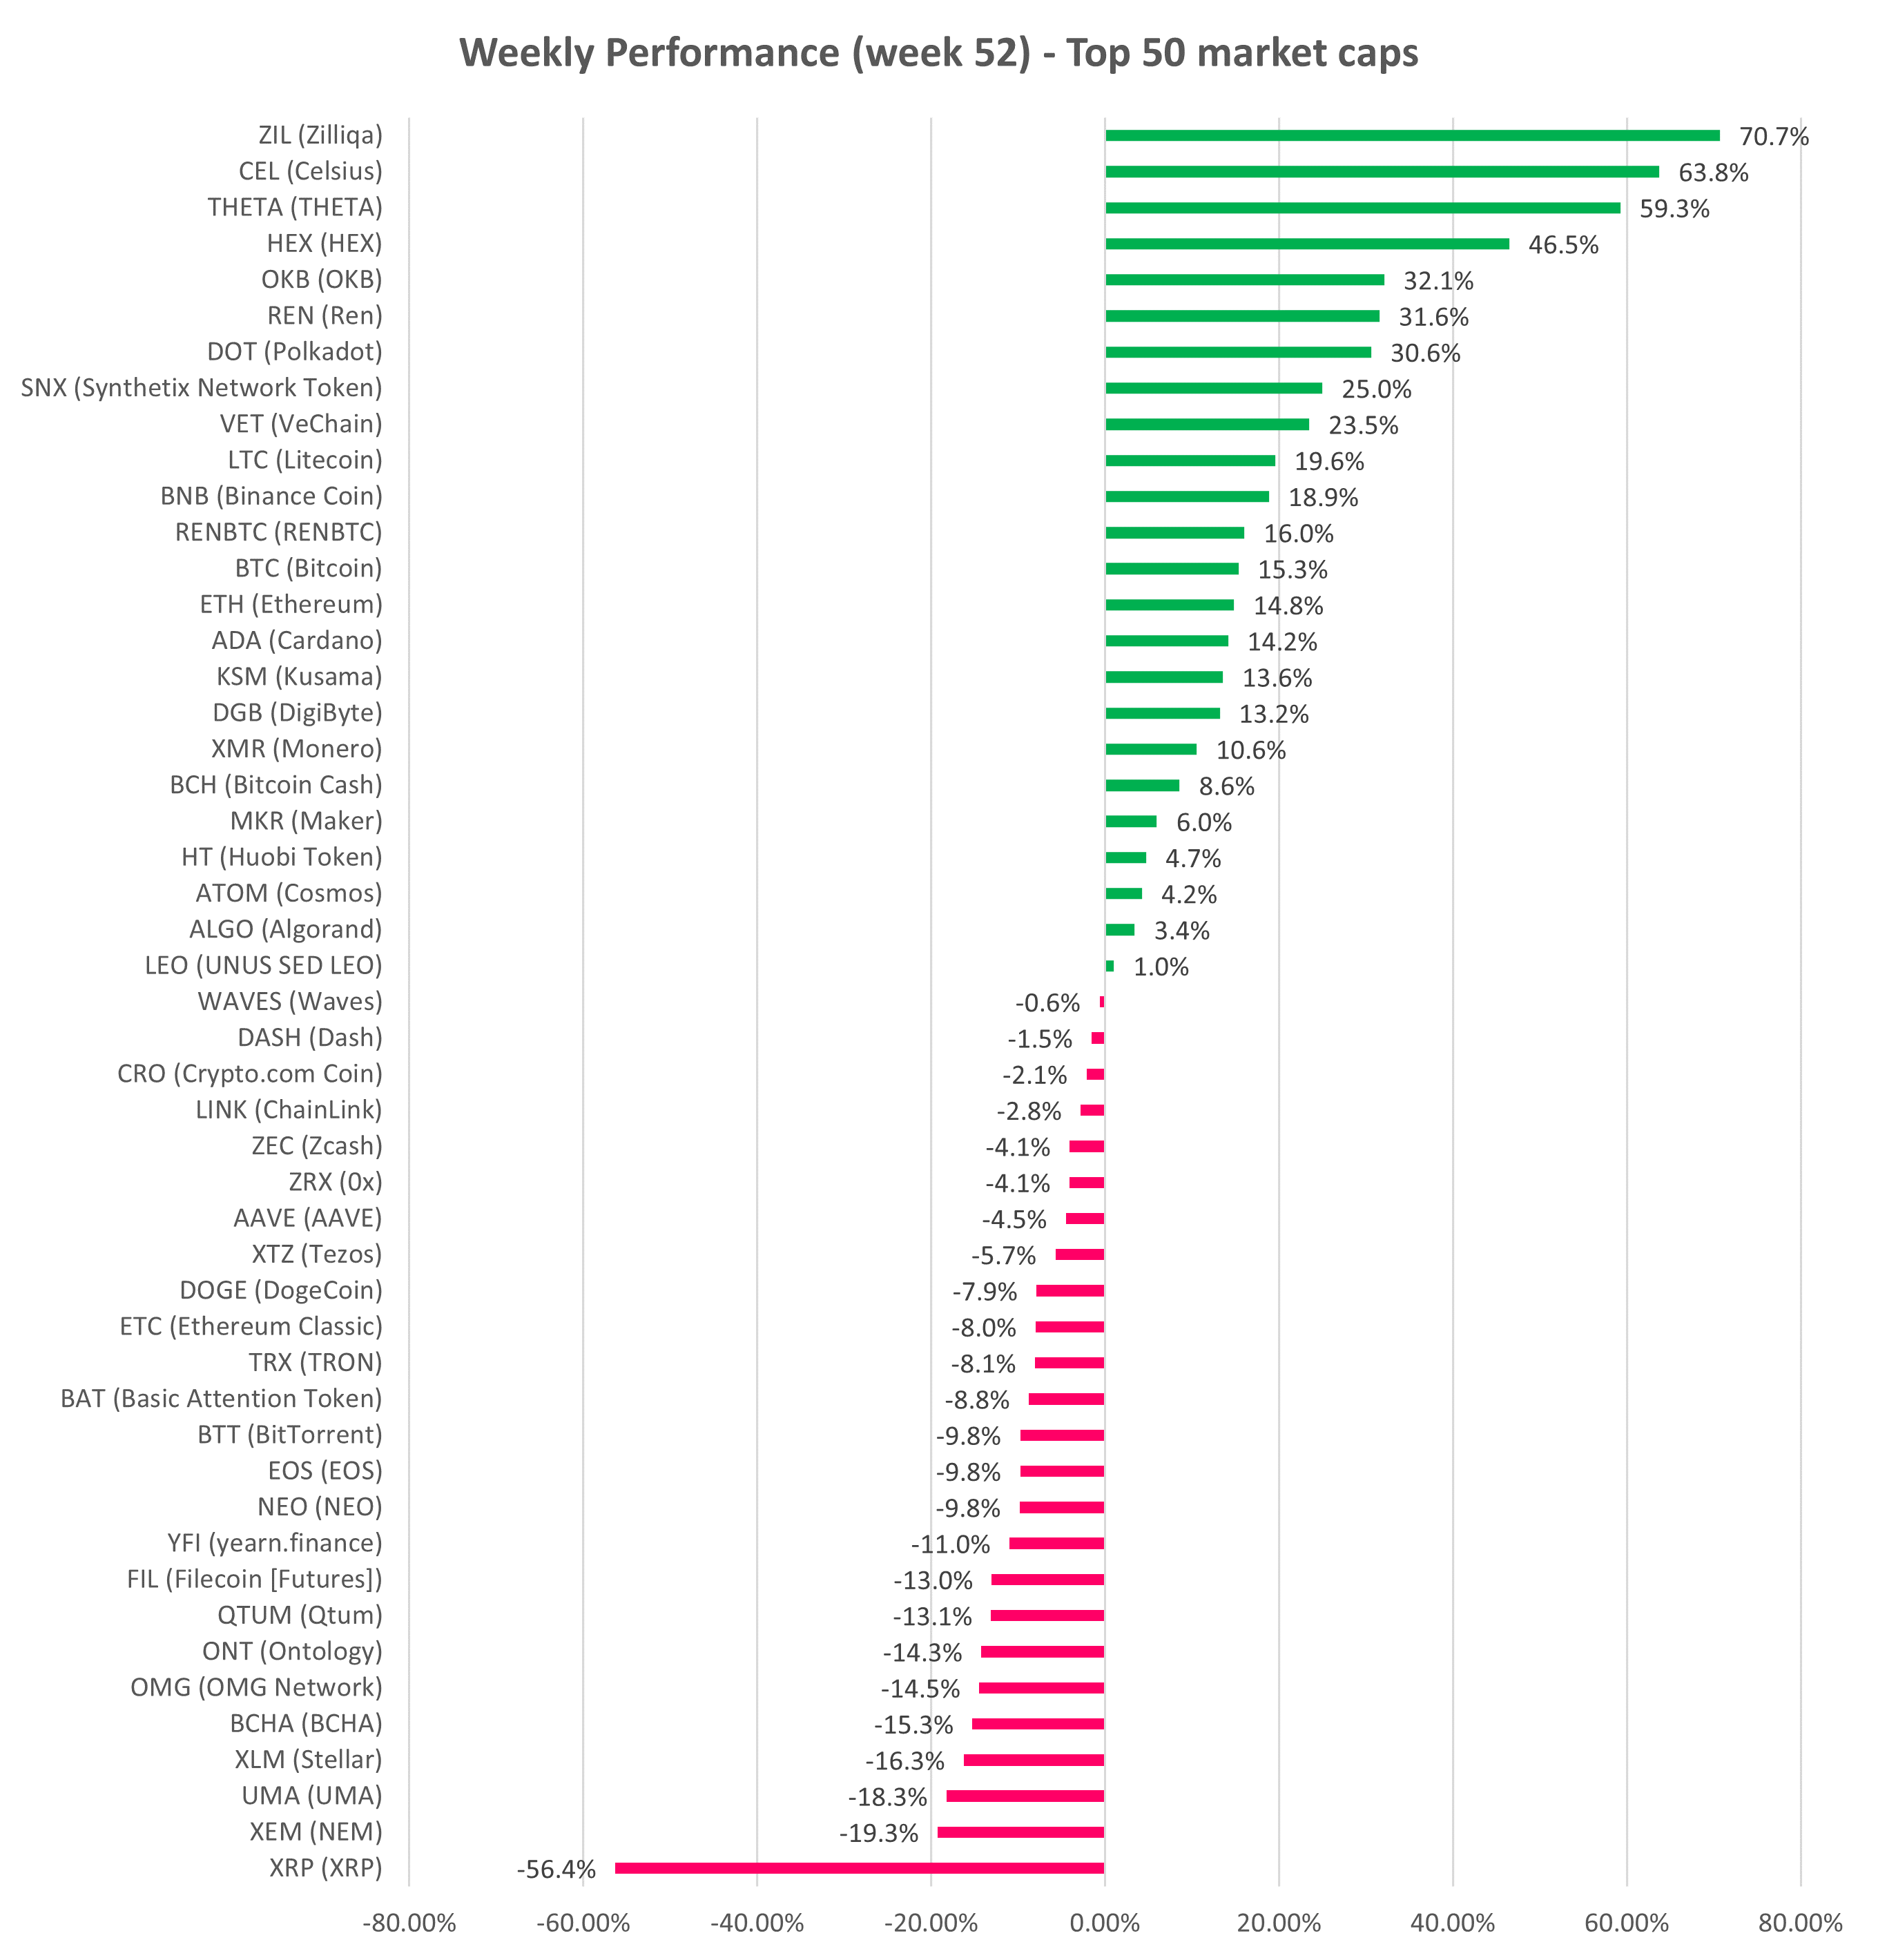 Top 50 cryptocurrency prices performance week 52